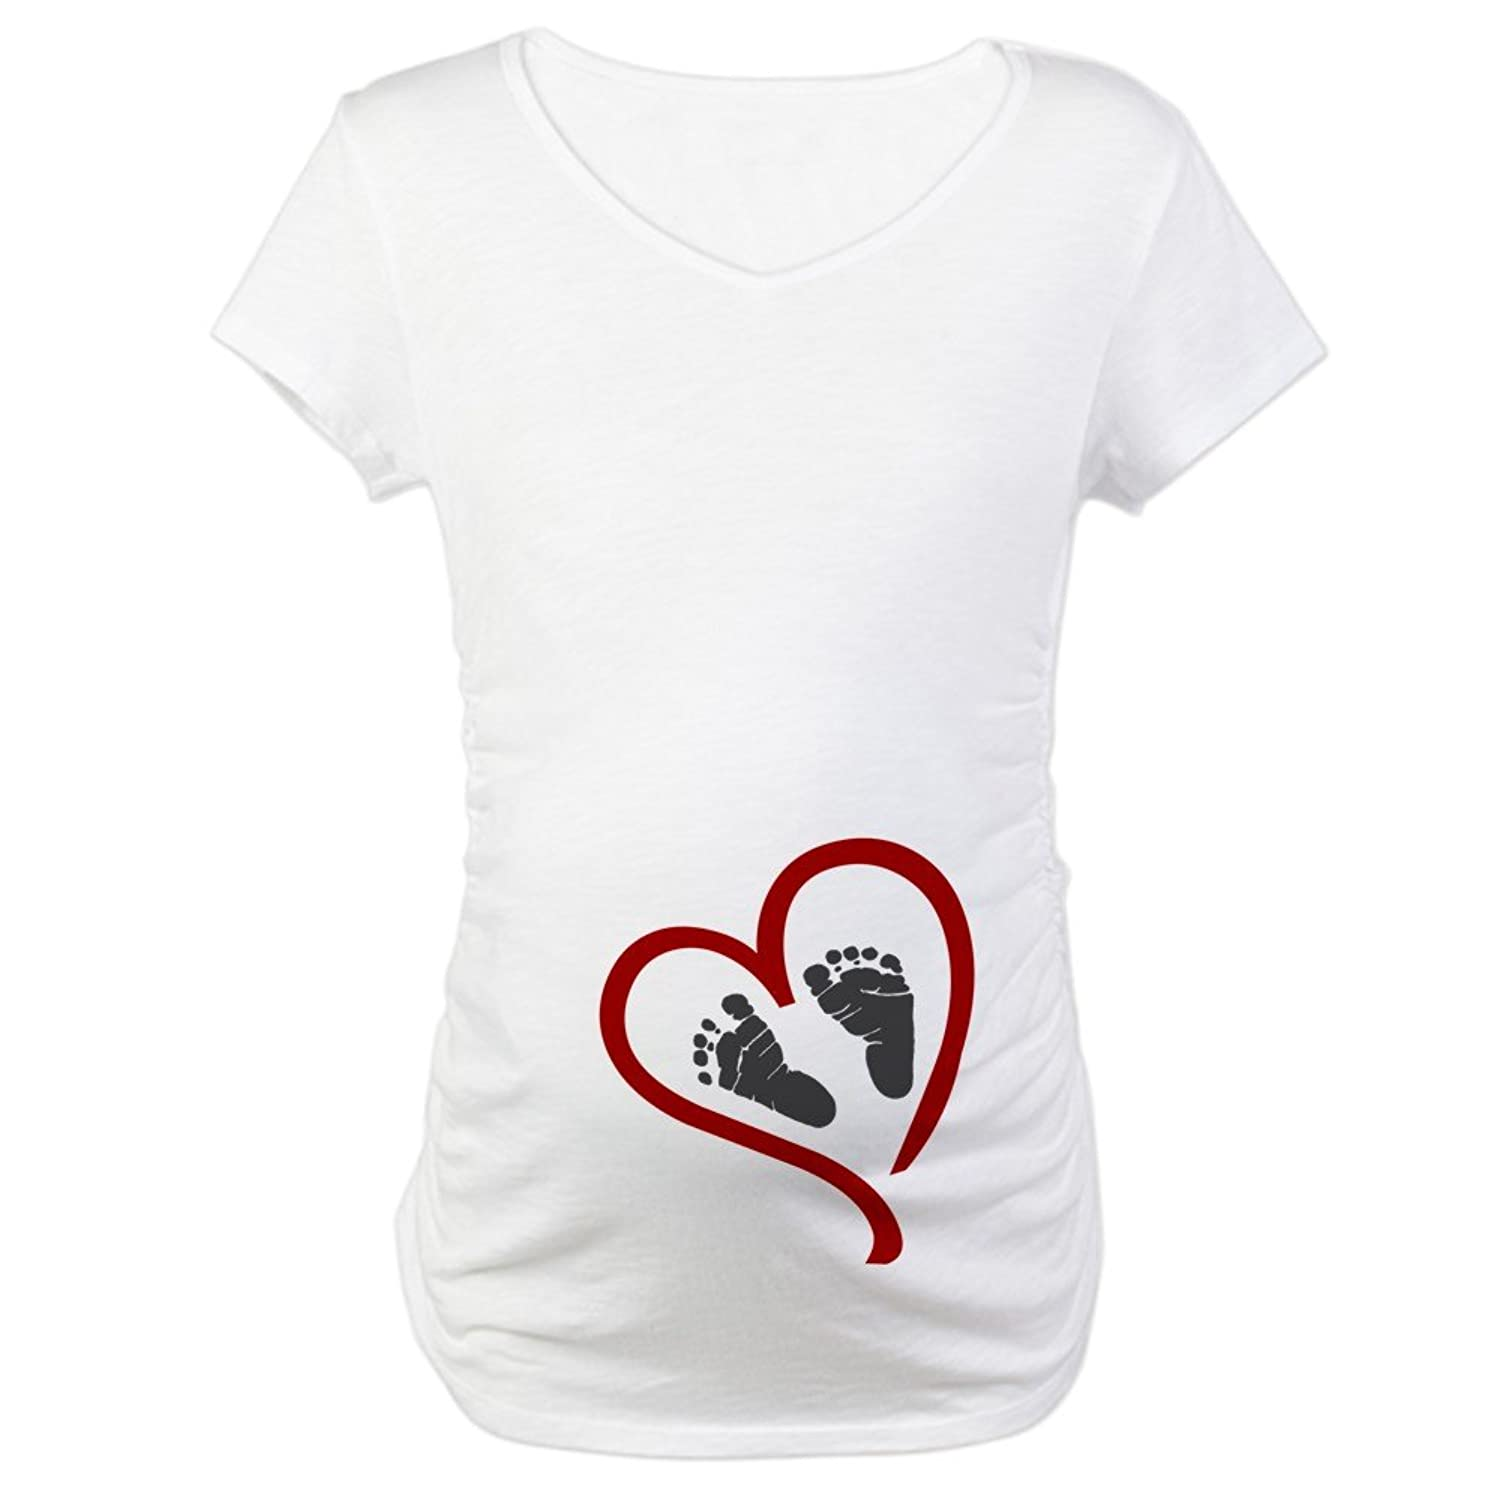 Amazon.com: CafePress   Baby Heart Feet Red Maternity T Shirt   Cotton  Maternity T Shirt, Cute U0026 Funny Pregnancy Tee: Clothing